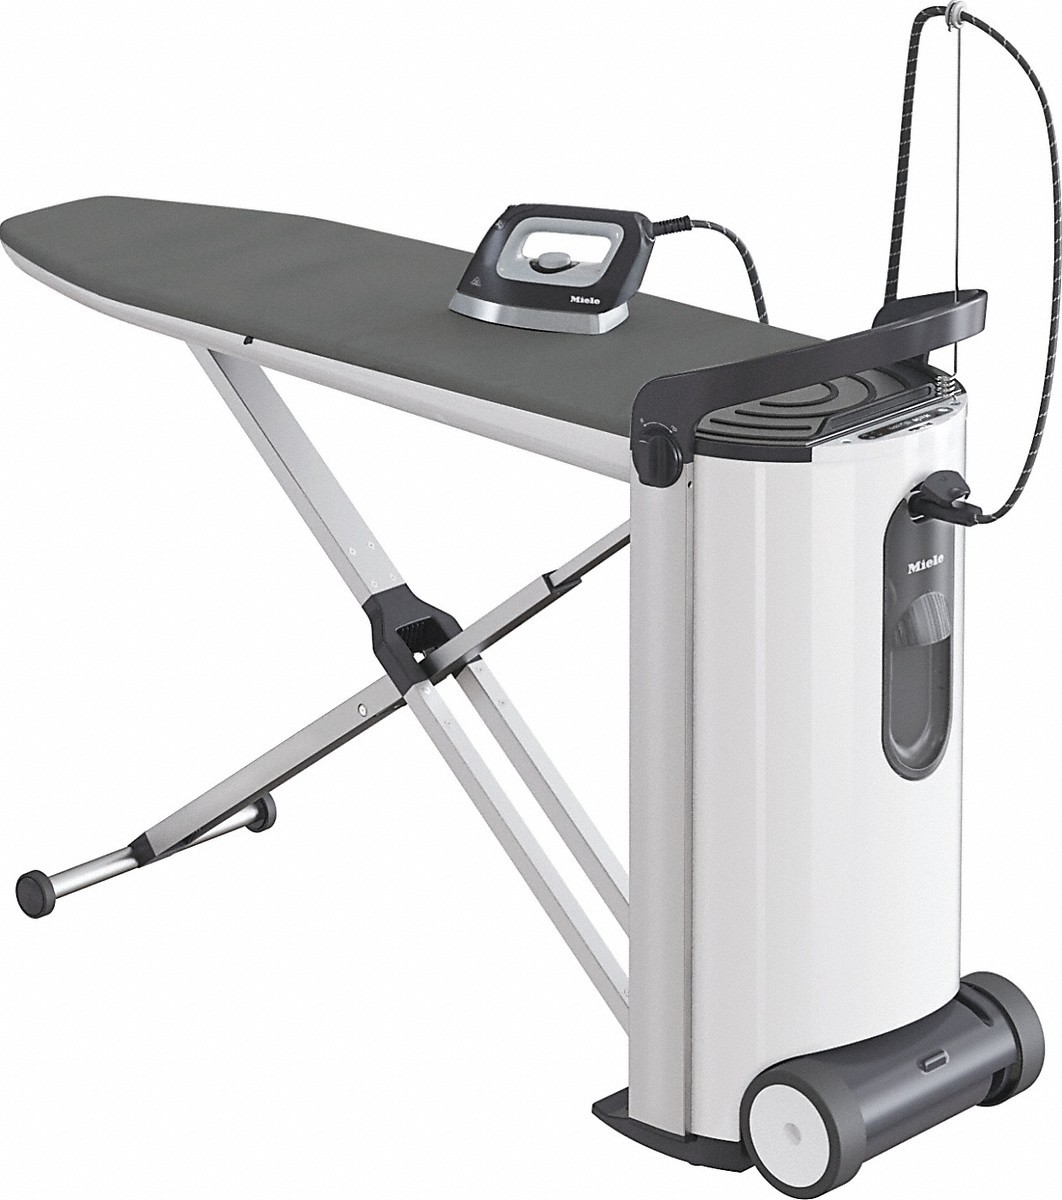 B 3312 FashionMaster  Steam ironing system